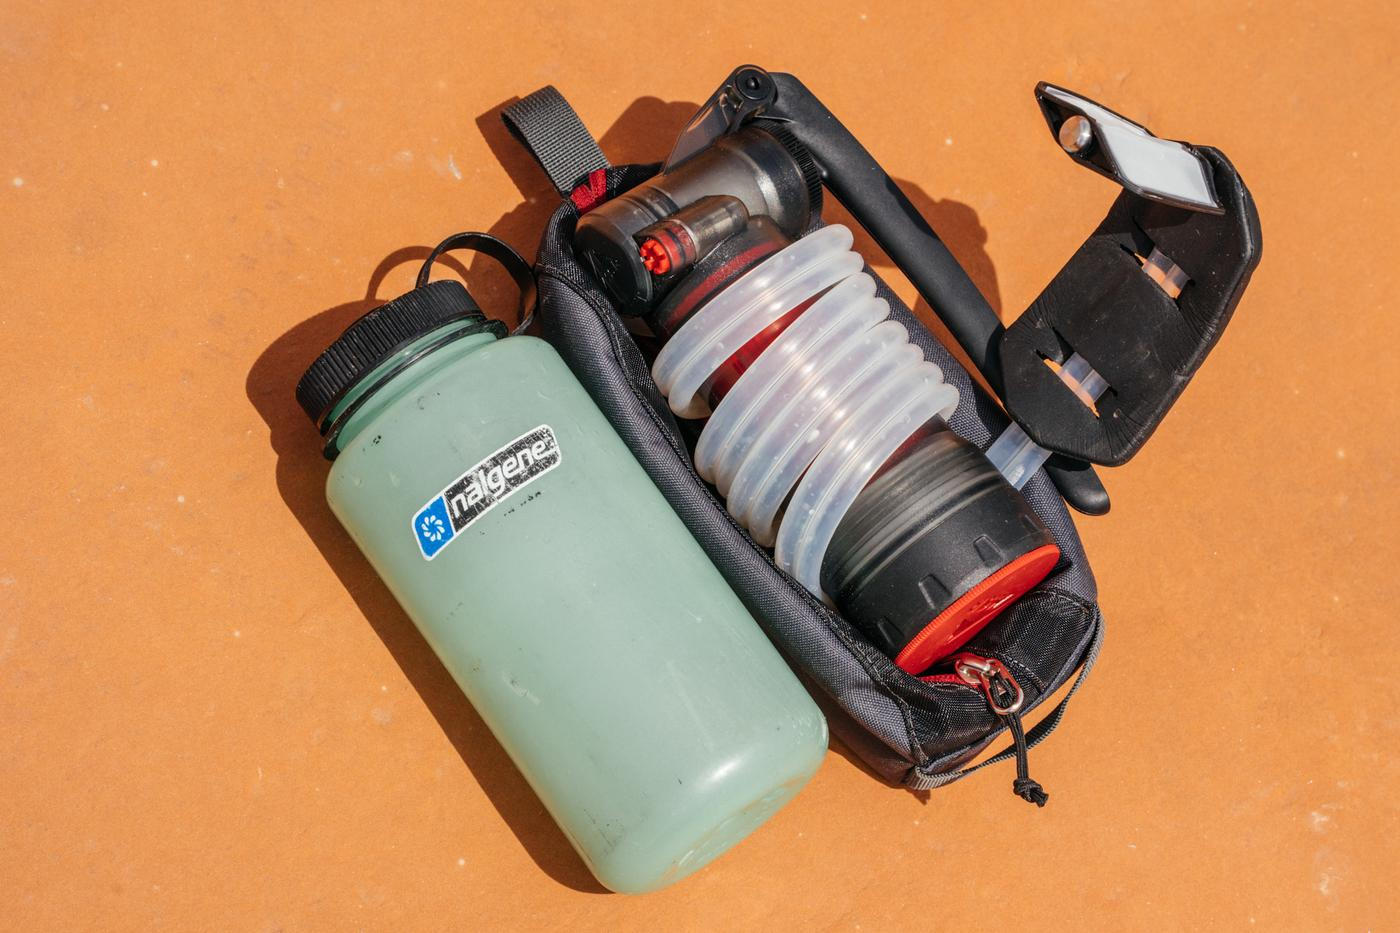 The MSR Guardian Purifier Water Filter is Hands Down the Best on the Market for Biketouring, Bikepacking, and Bike Camping